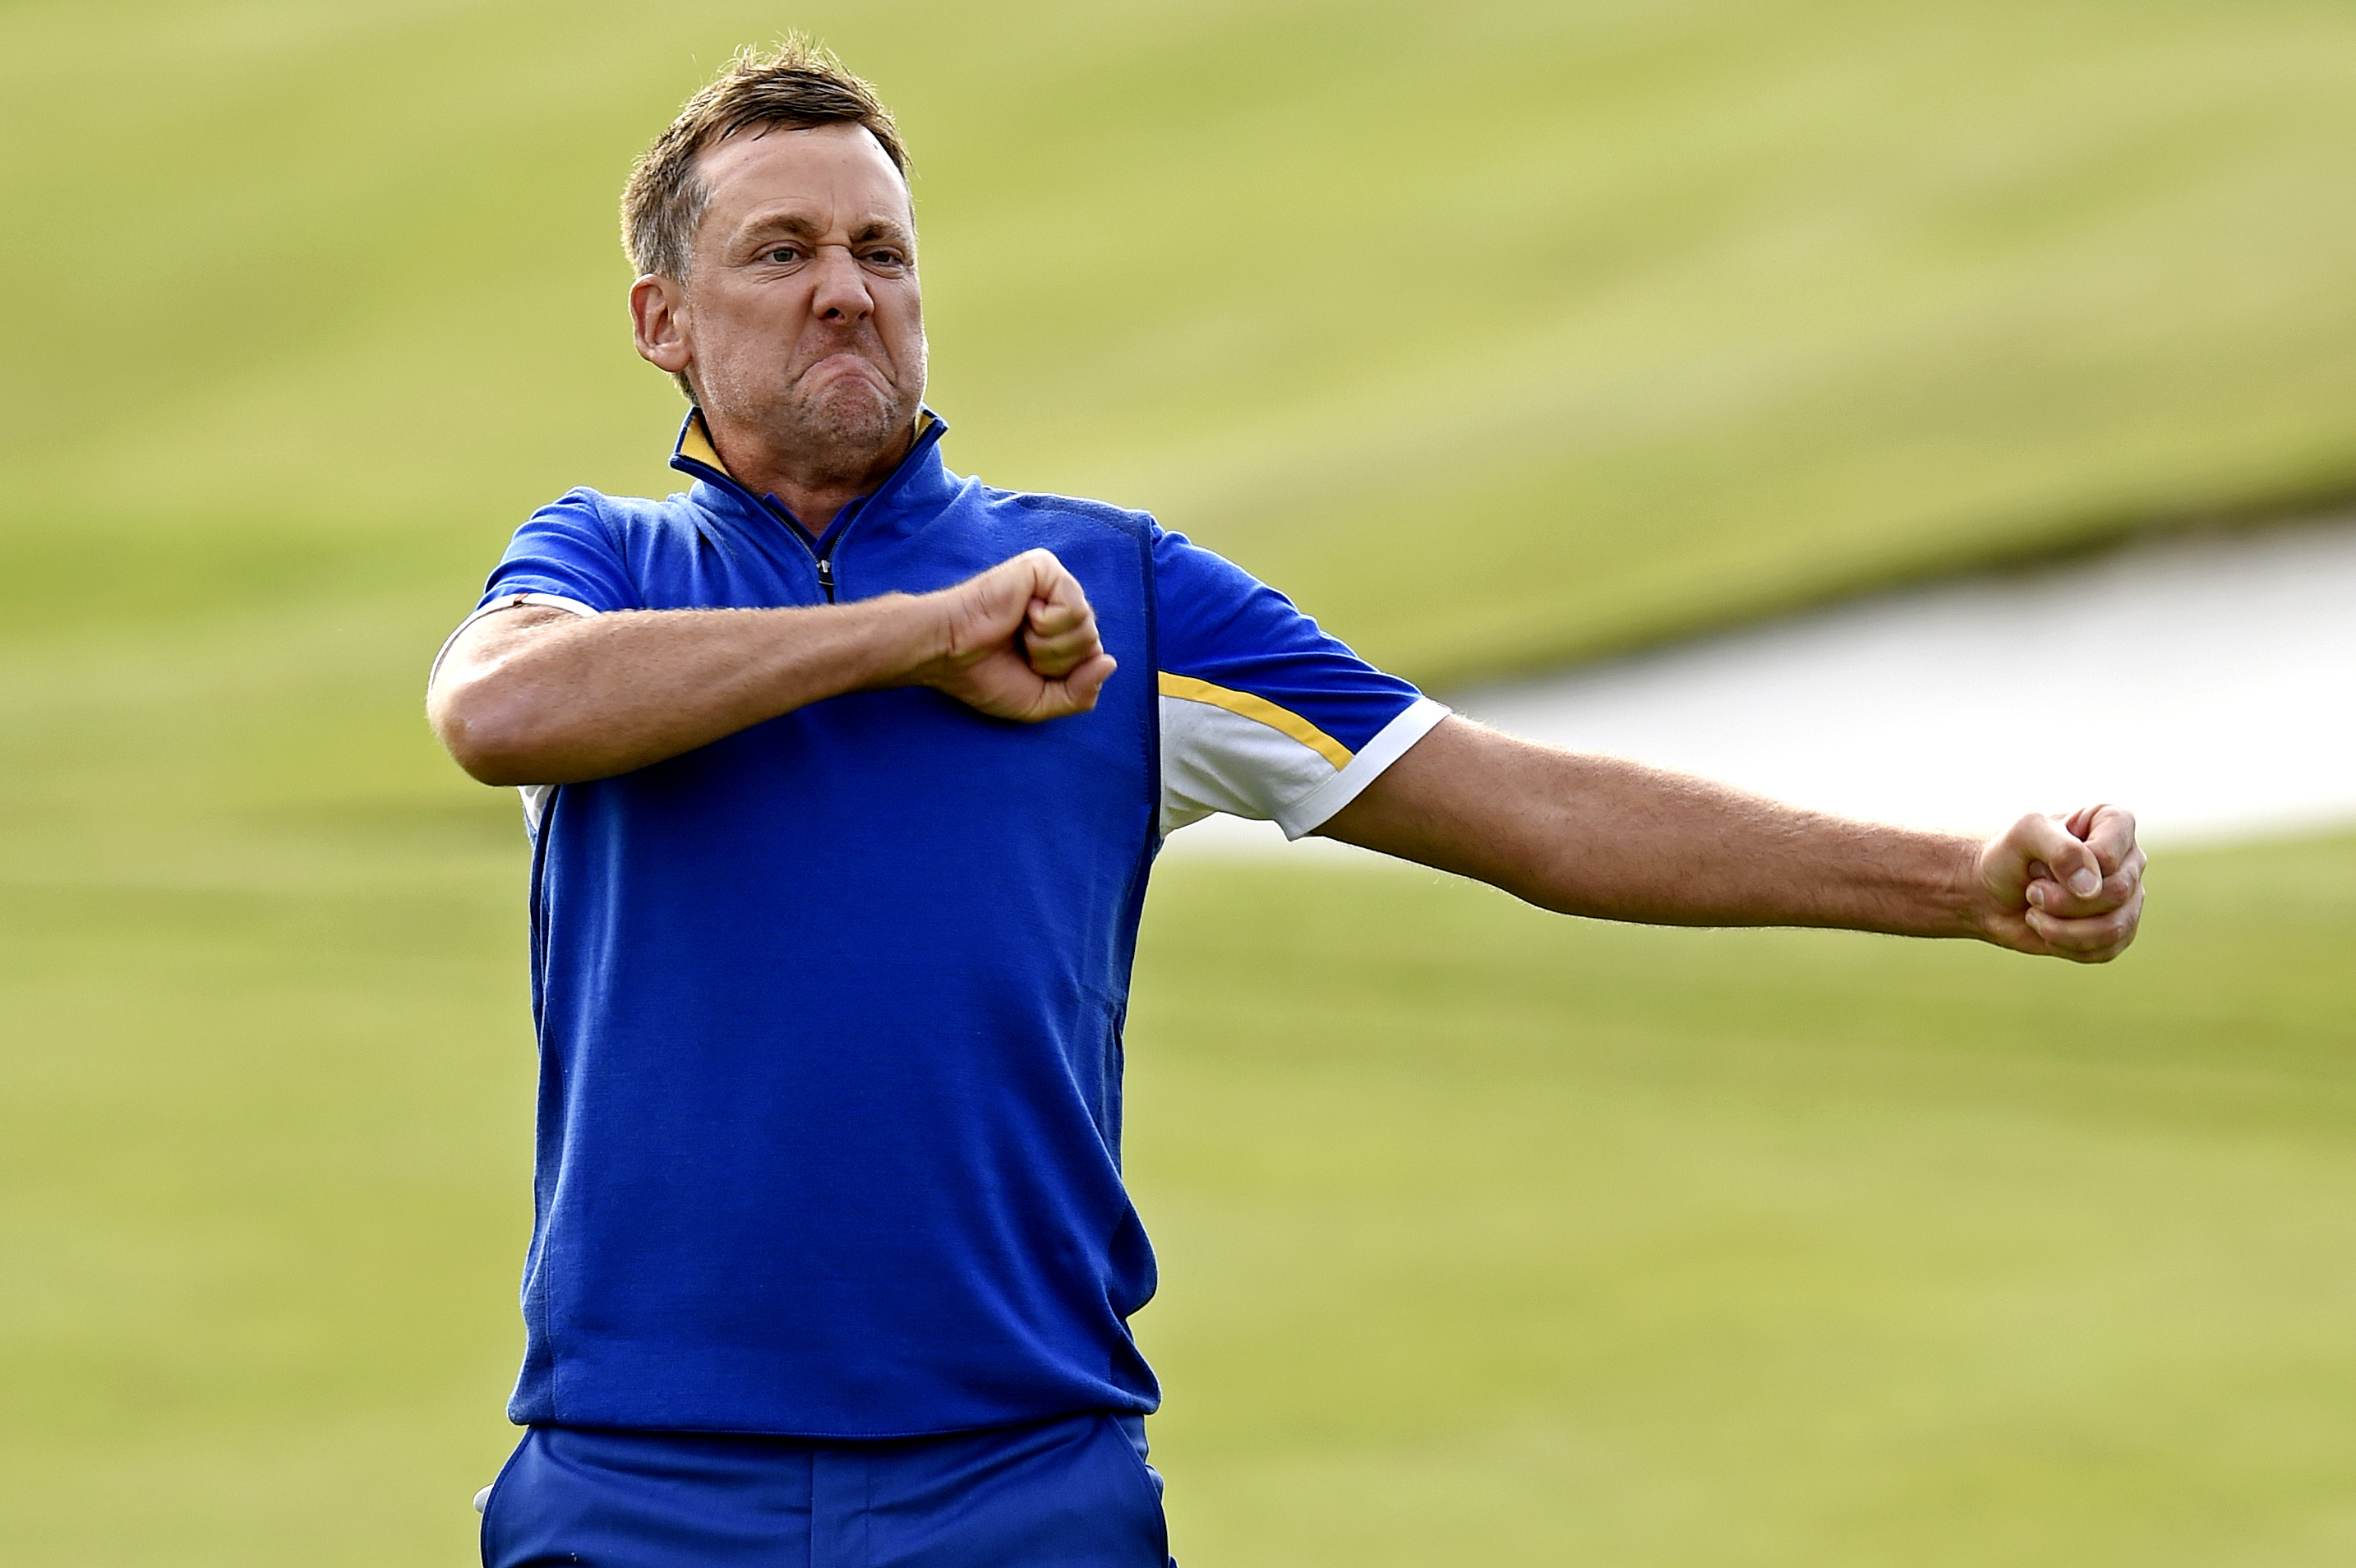 Sep 30, 2018; Paris, FRA; Europe golfer Ian Poulter celebrates on the 18th green during the Ryder Cup Sunday singles matches at Le Golf National. Mandatory Credit: Ian Rutherford-USA TODAY Sports